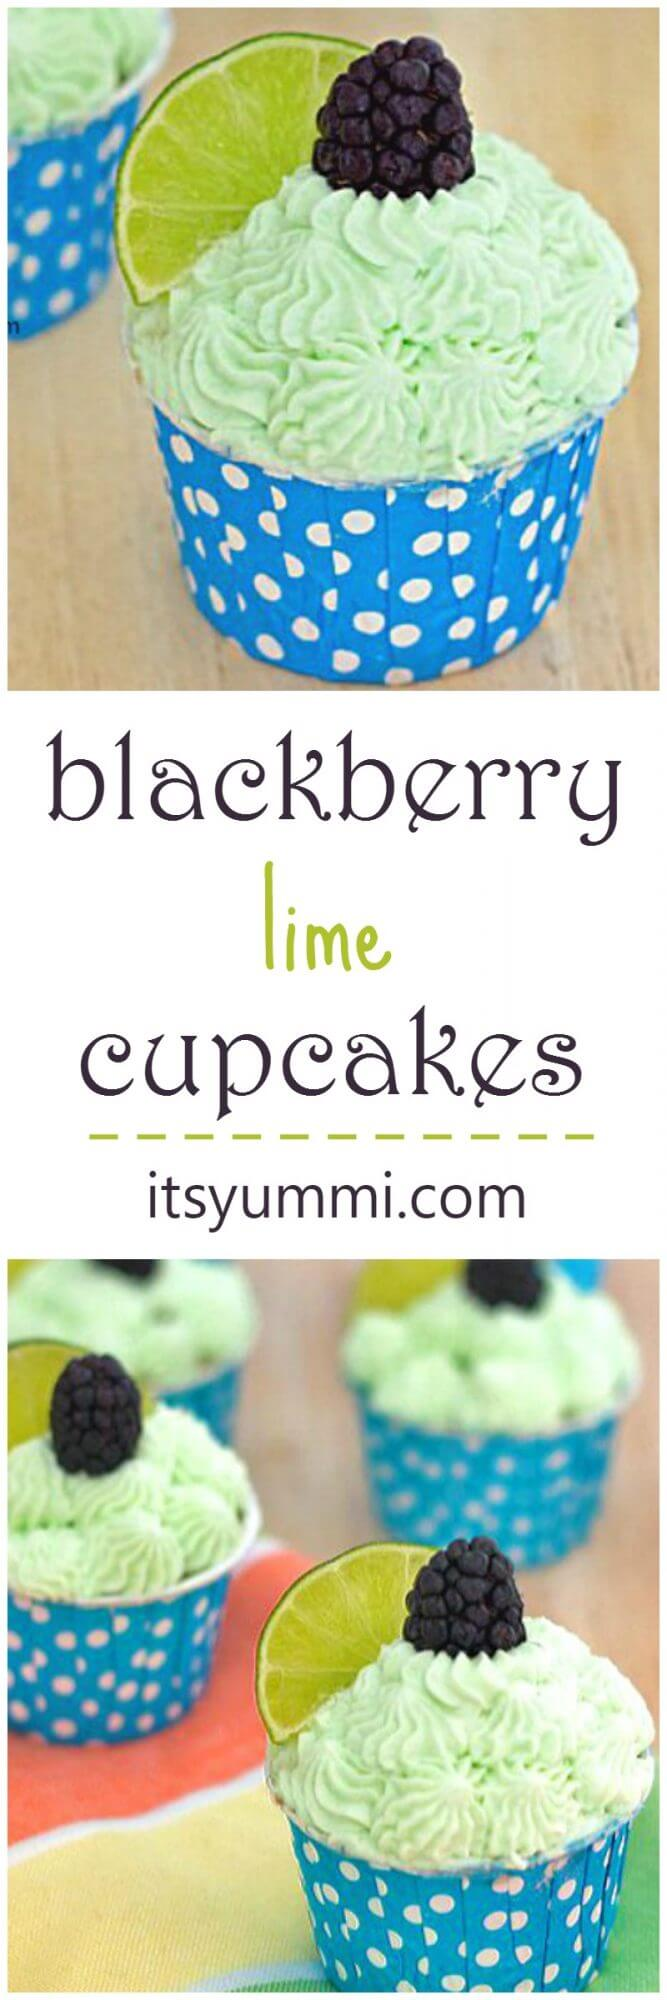 Blackberry Lime Cupcakes Recipe - Cupcakes from scratch (post has instructions on how to make them from a boxed cake mix, too!) \\ ItsYummi.com